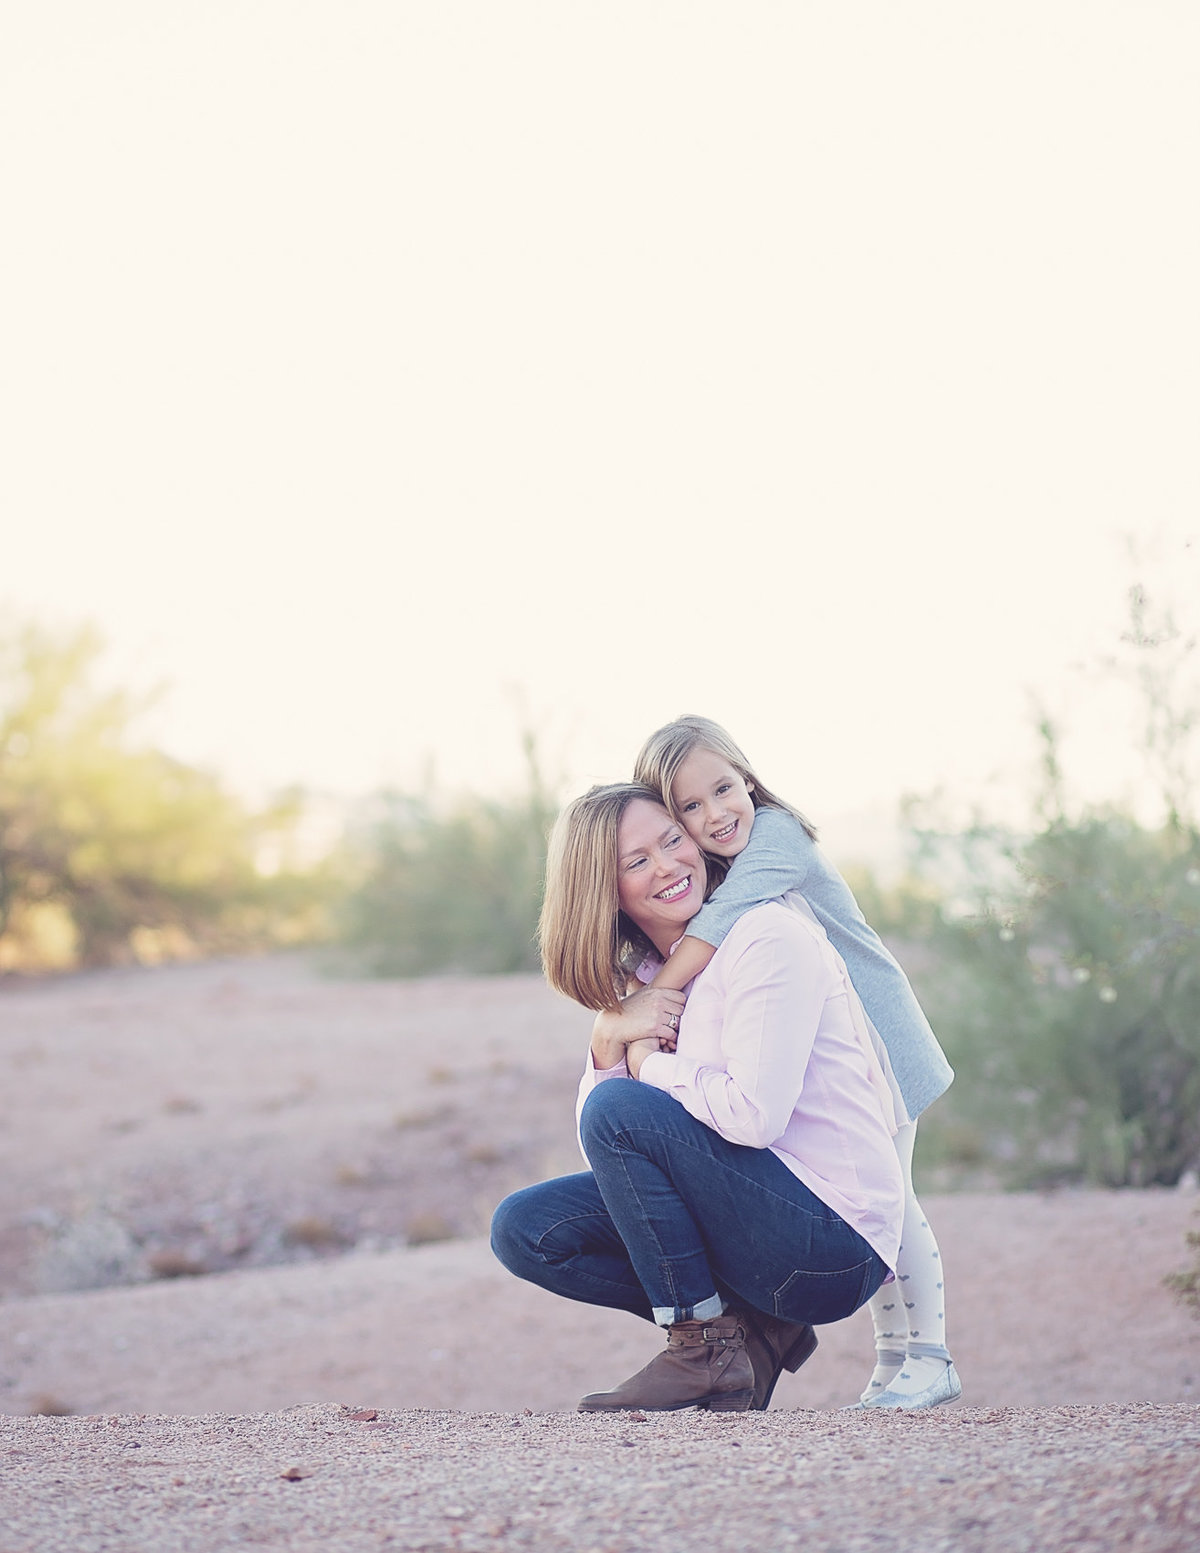 mom and daughter desert photo by Scottsdale Arizona Family Photographer Plume Designs & Photography